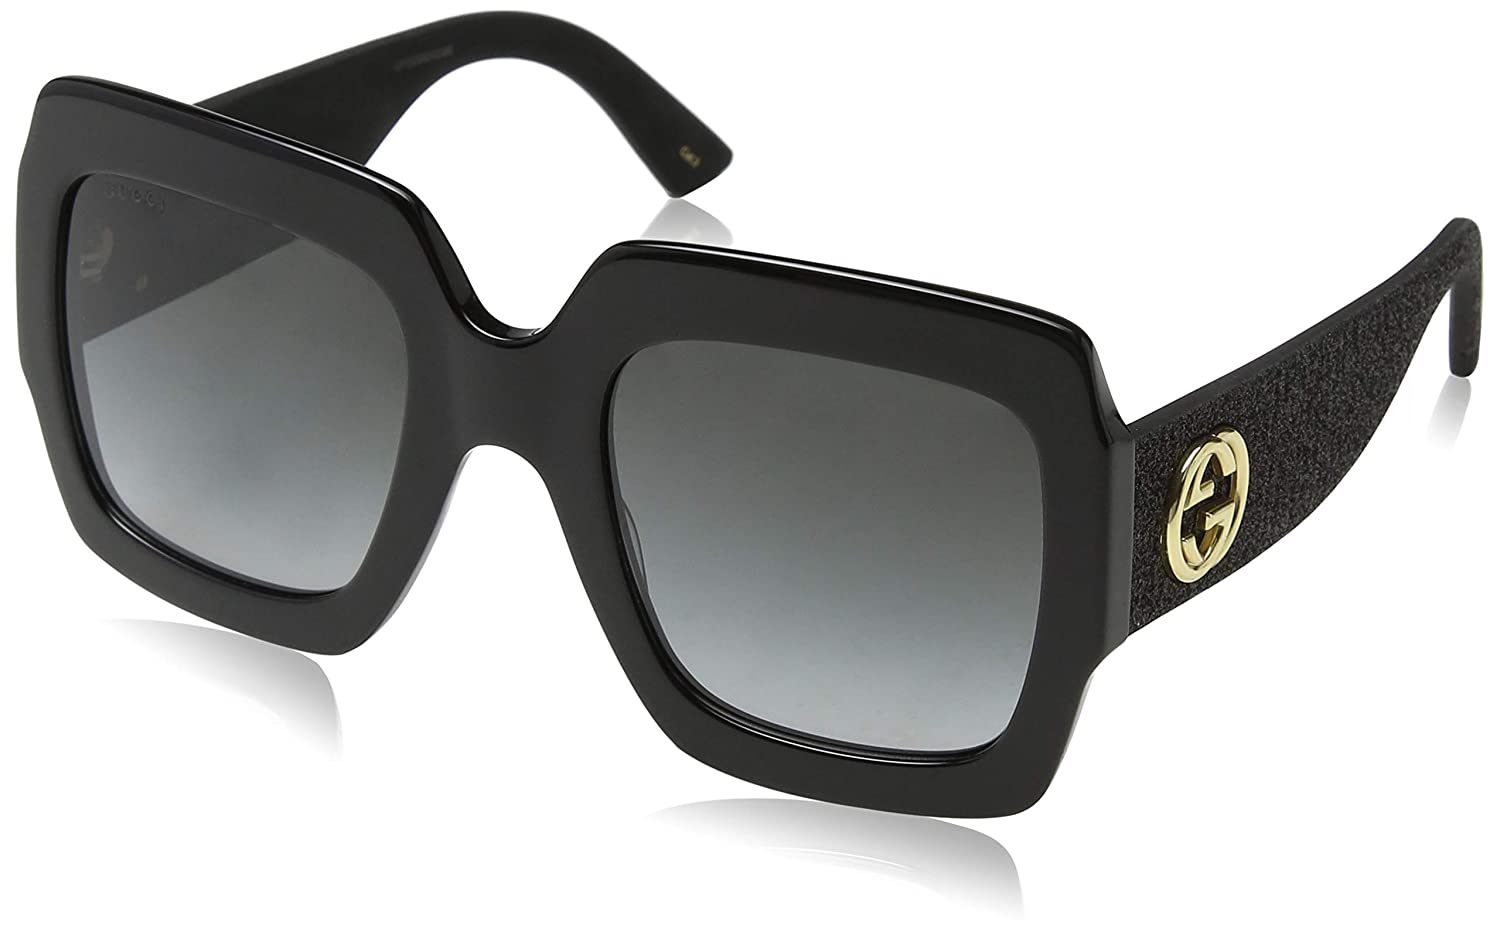 03bed714c56 Amazon.com  Gucci GG0102S 001 Black Grey GG0102S Square Sunglasses Lens  Category 3 Size 5  Clothing